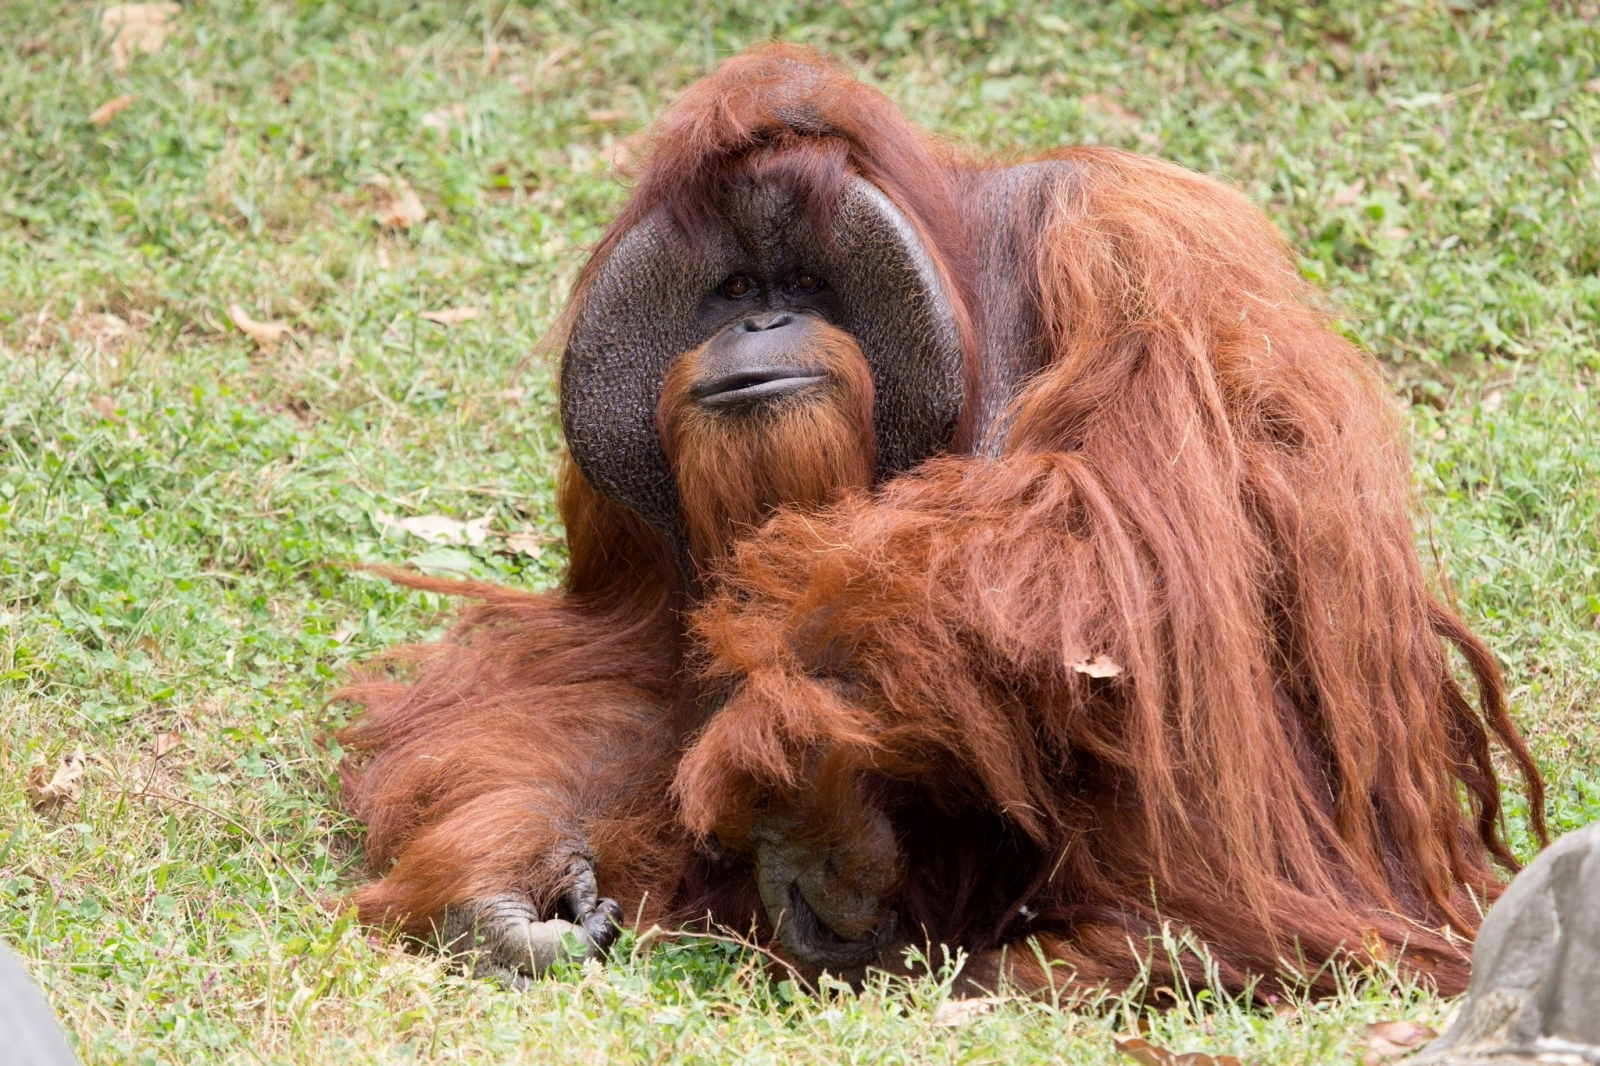 Zoo Atlanta mourns the death of 39-year-old orangutan, Chantek